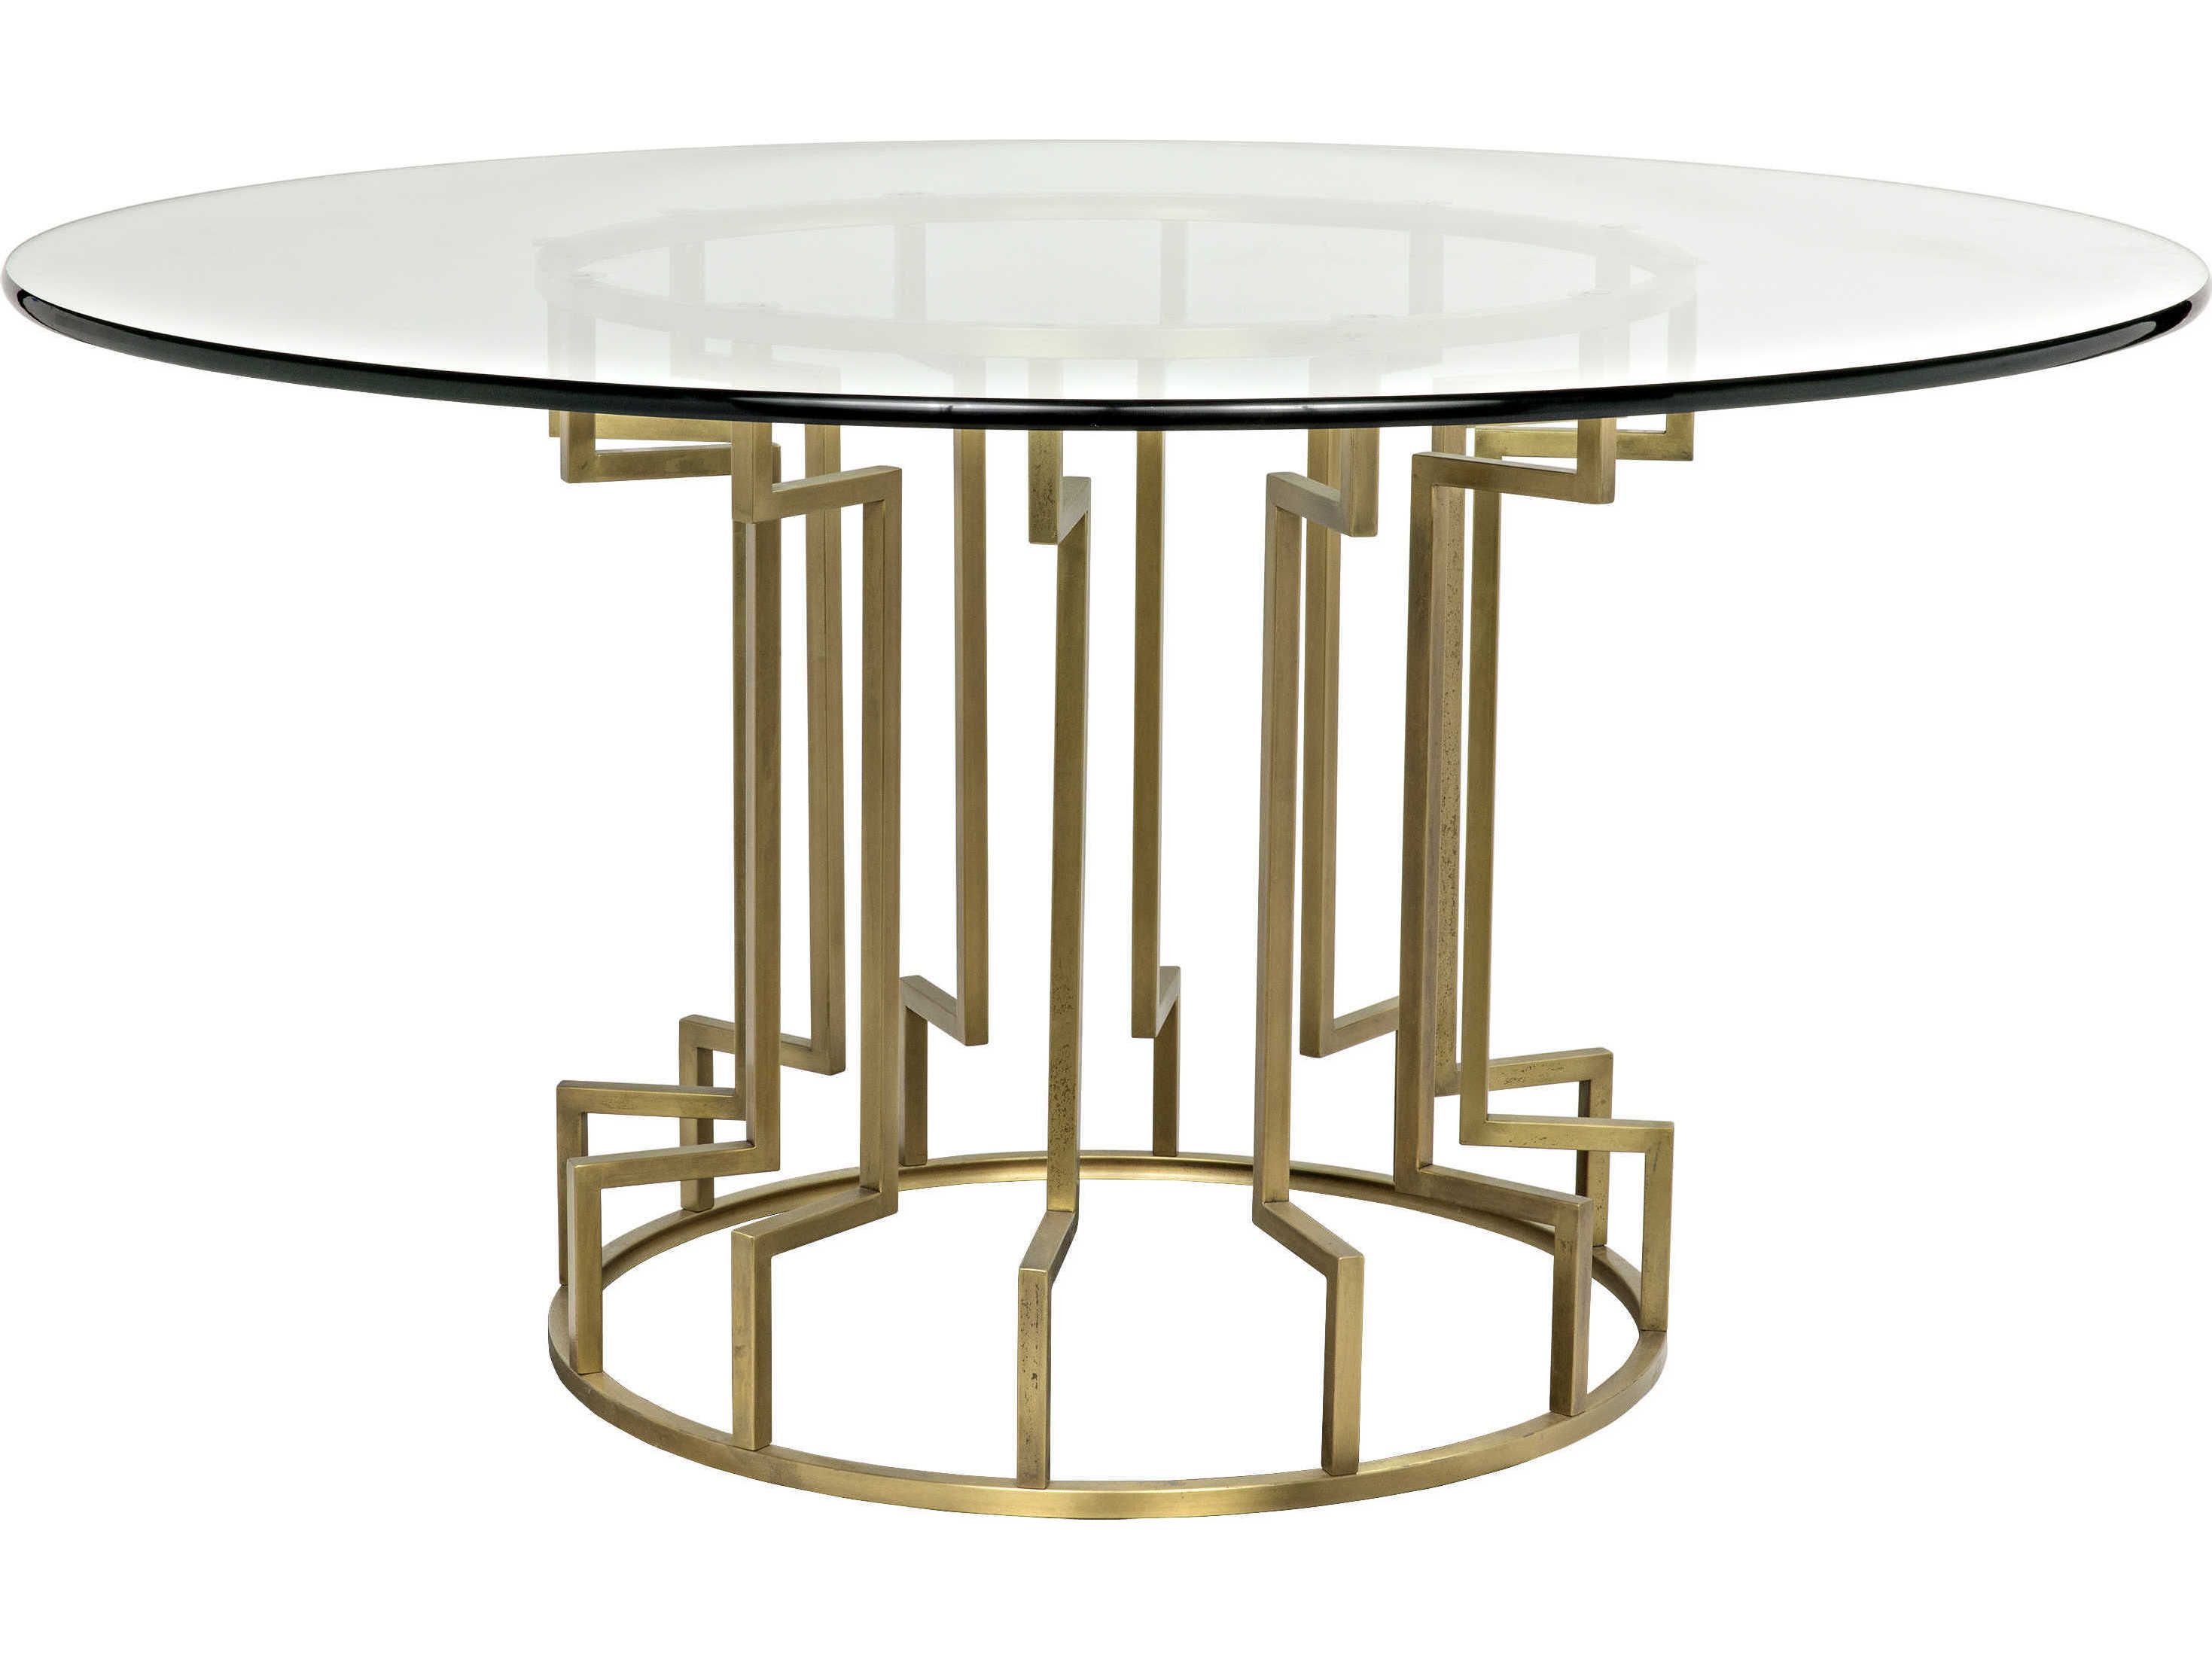 Noir Furniture Spool Gold 60 Round Dining Table 60 Round